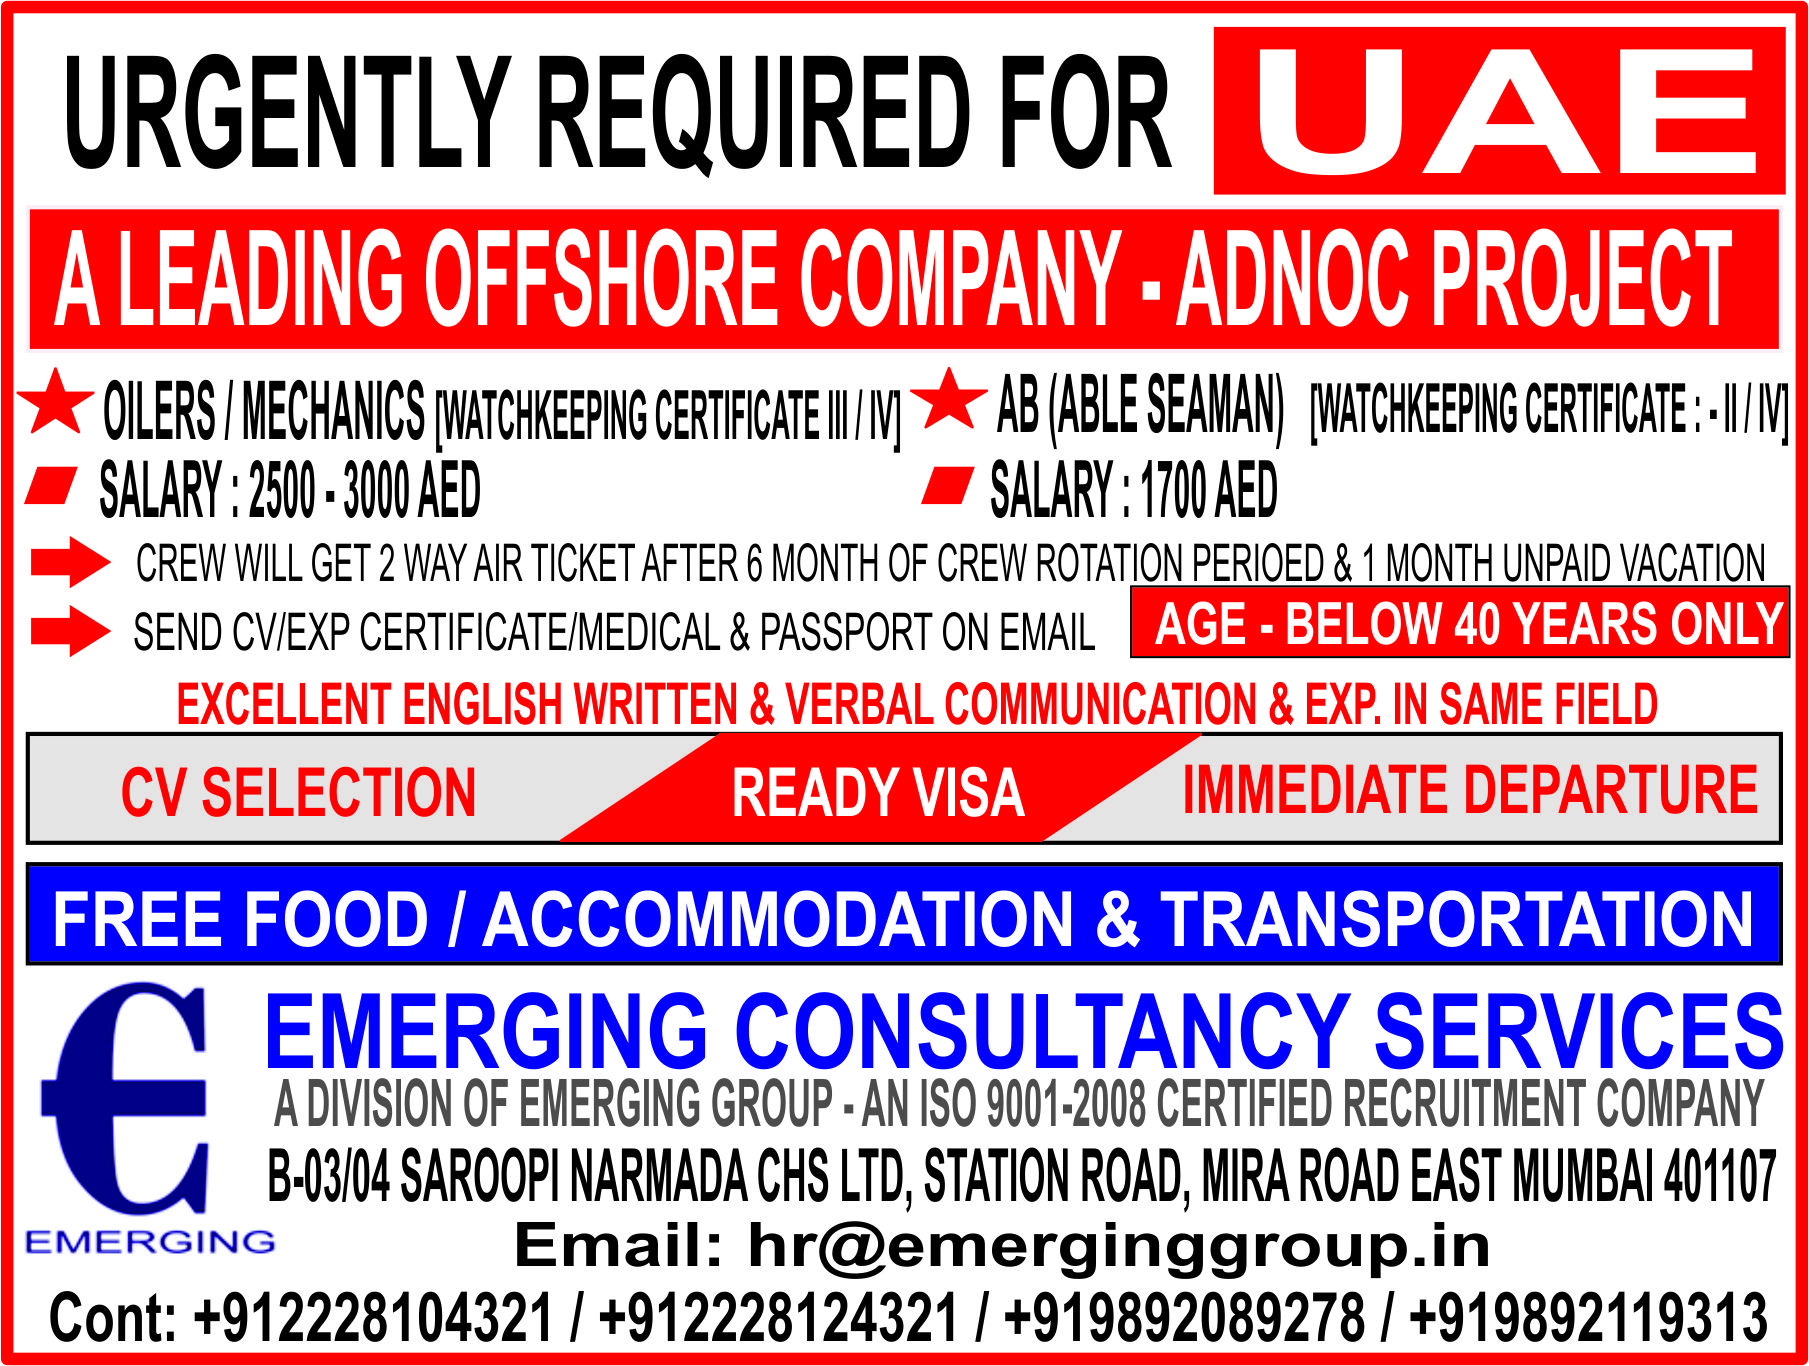 URGENT HIRING FOR A LEADING OFFSHORE COMPANY IN UAE ADNOC PROJECT